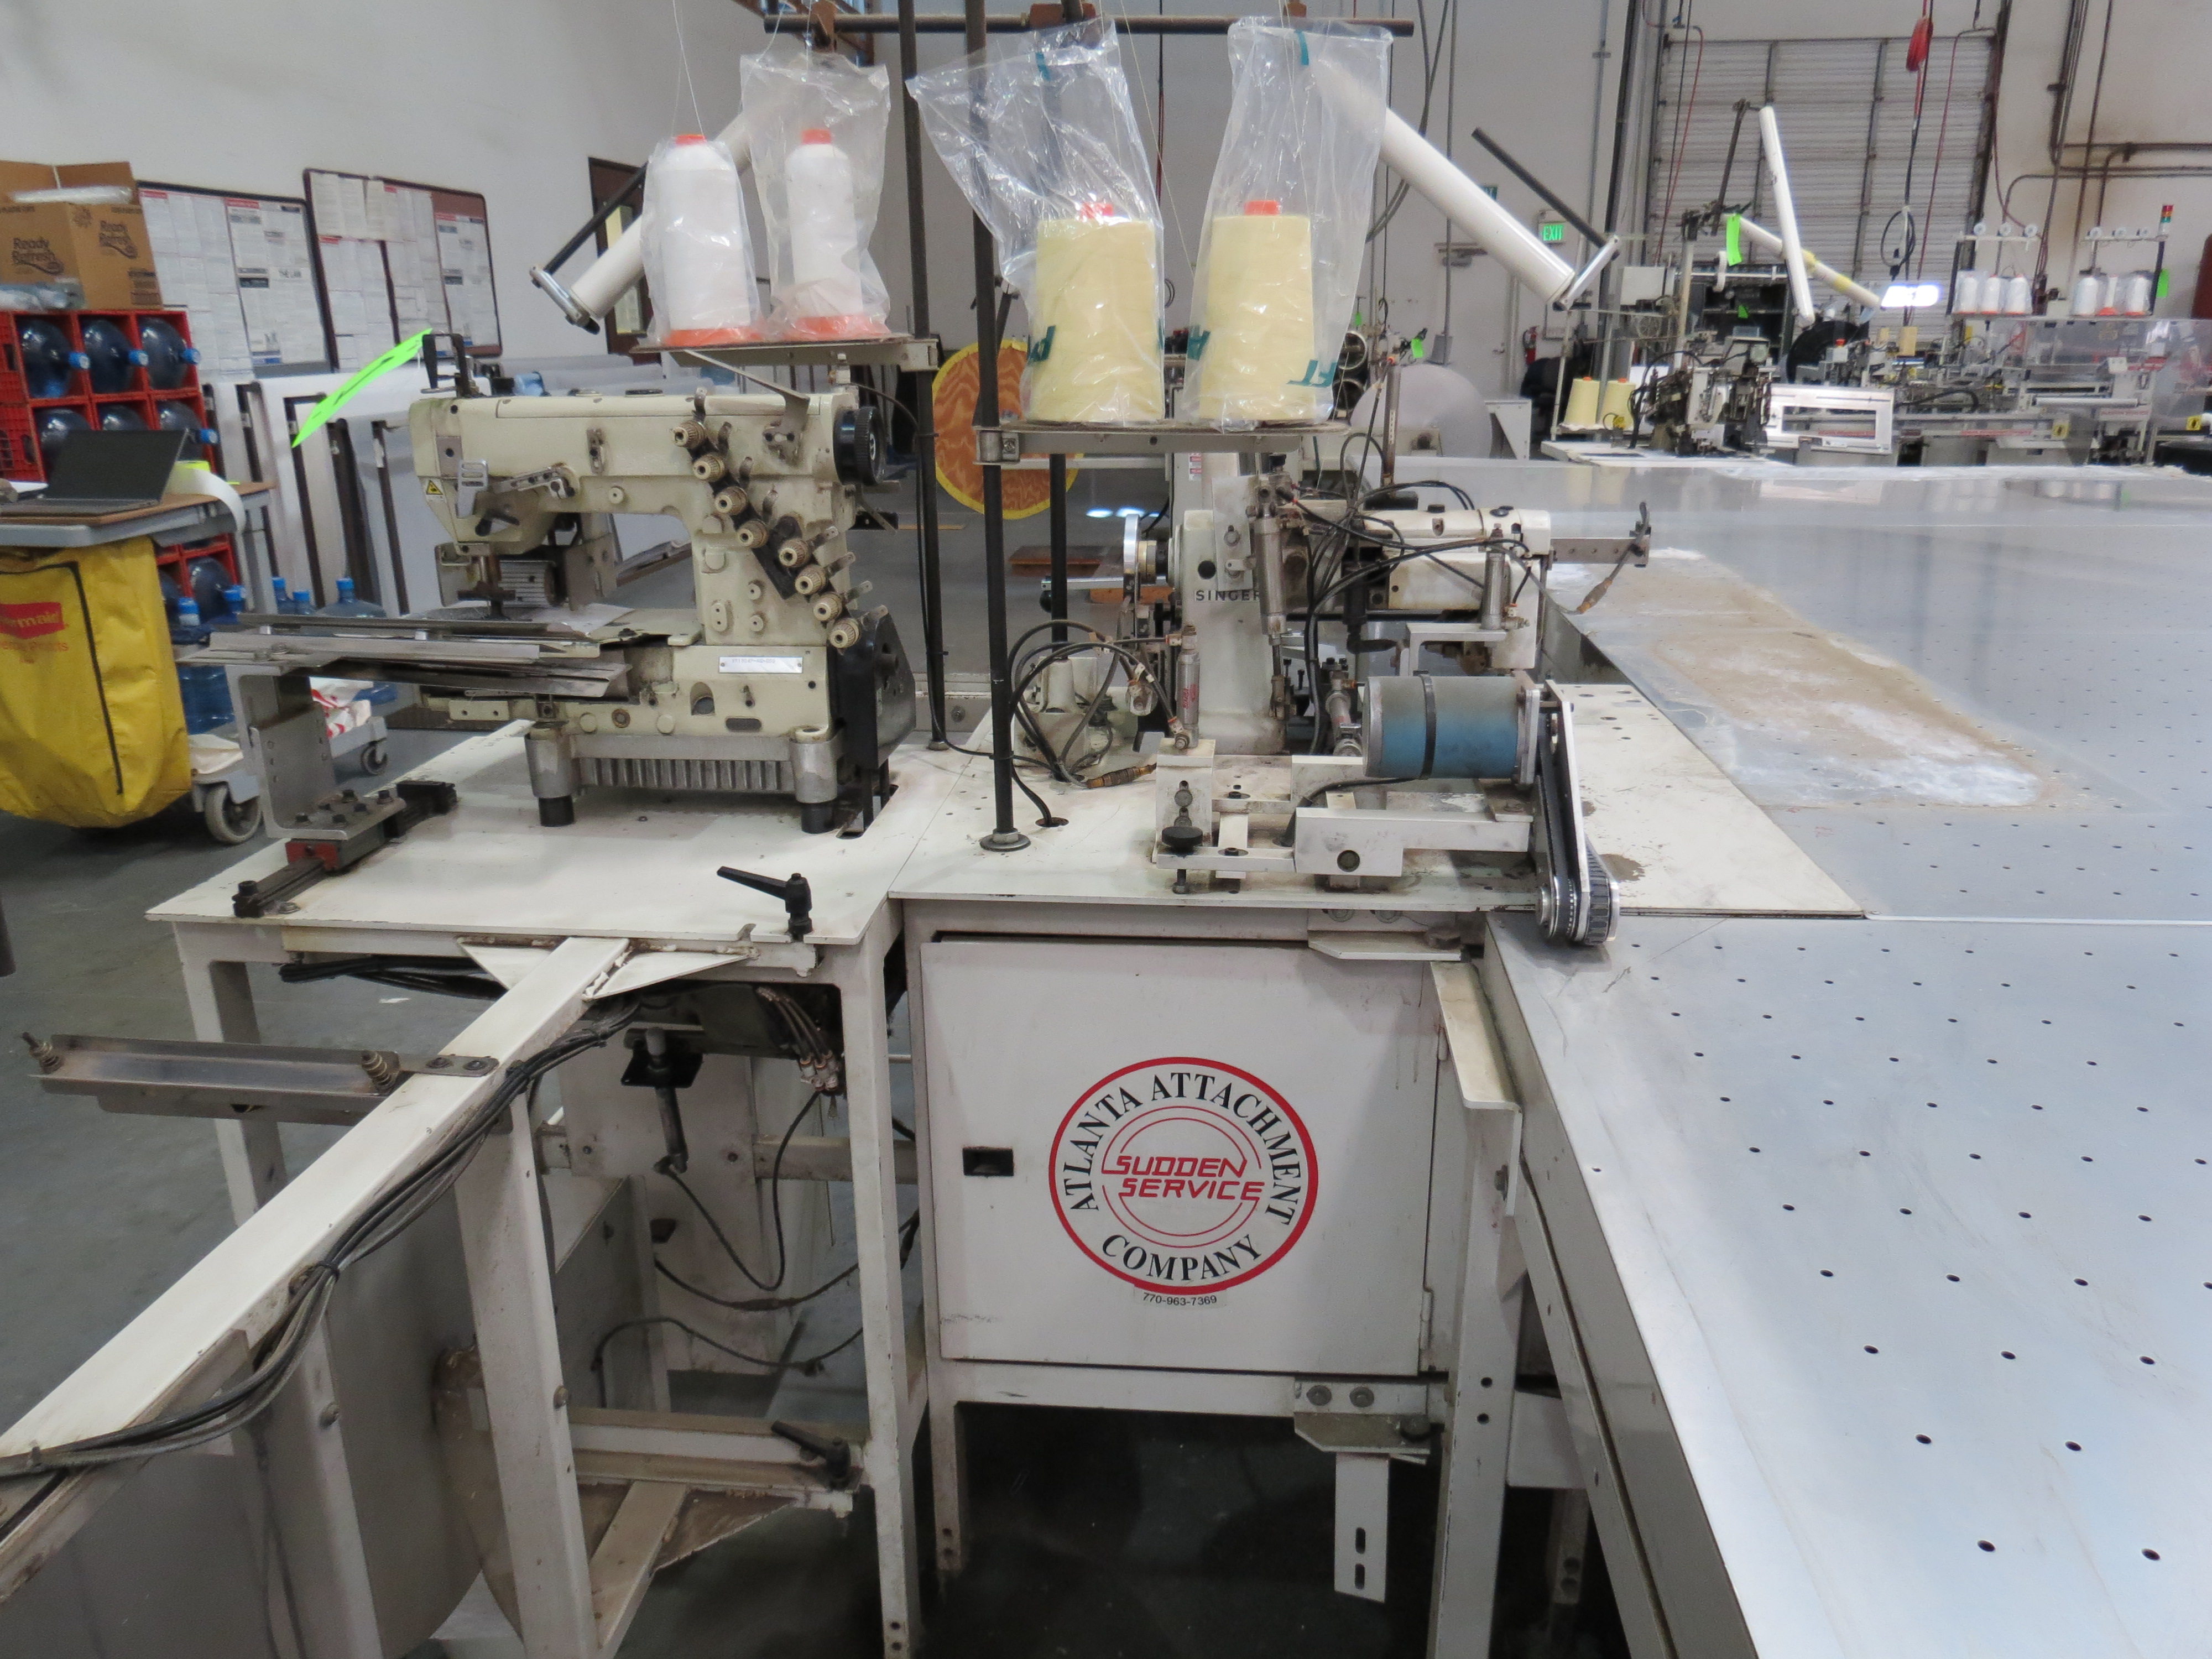 Atlanta Attachment Company VM1804P-NG-002 Gusset Sewing Machine with Flotation Table 8' x 13' - Image 7 of 8